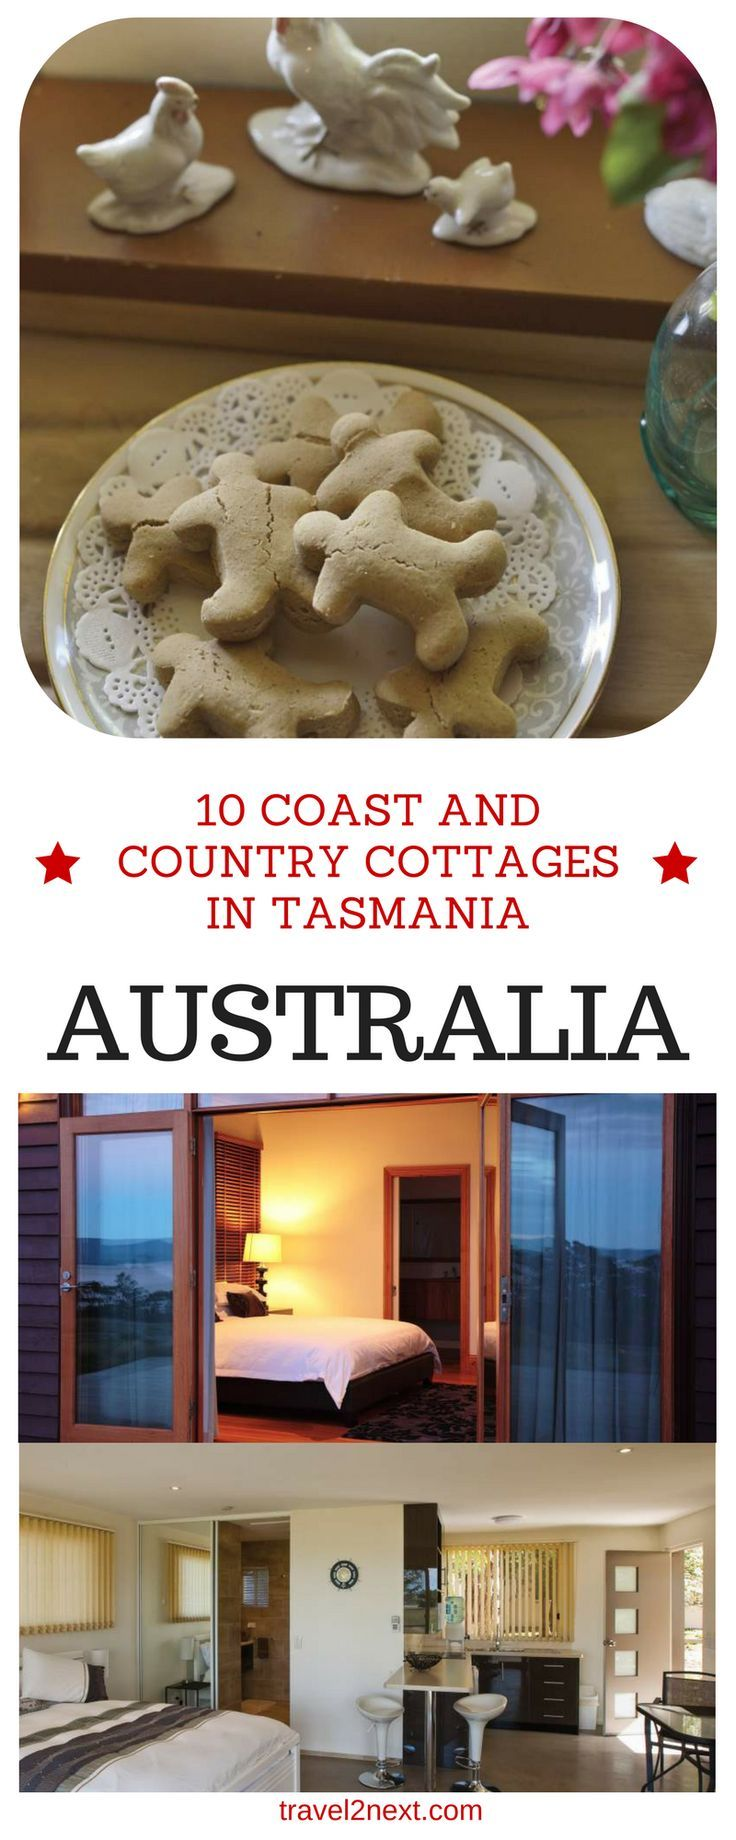 10 coast and country cottages in Tasmania. A home of stone, steel or ancient rainforest timbers, the cottages around Tasmania are immensely appealing to travellers who want to soak up the history and natural surroundings of Australia's southernmost state.